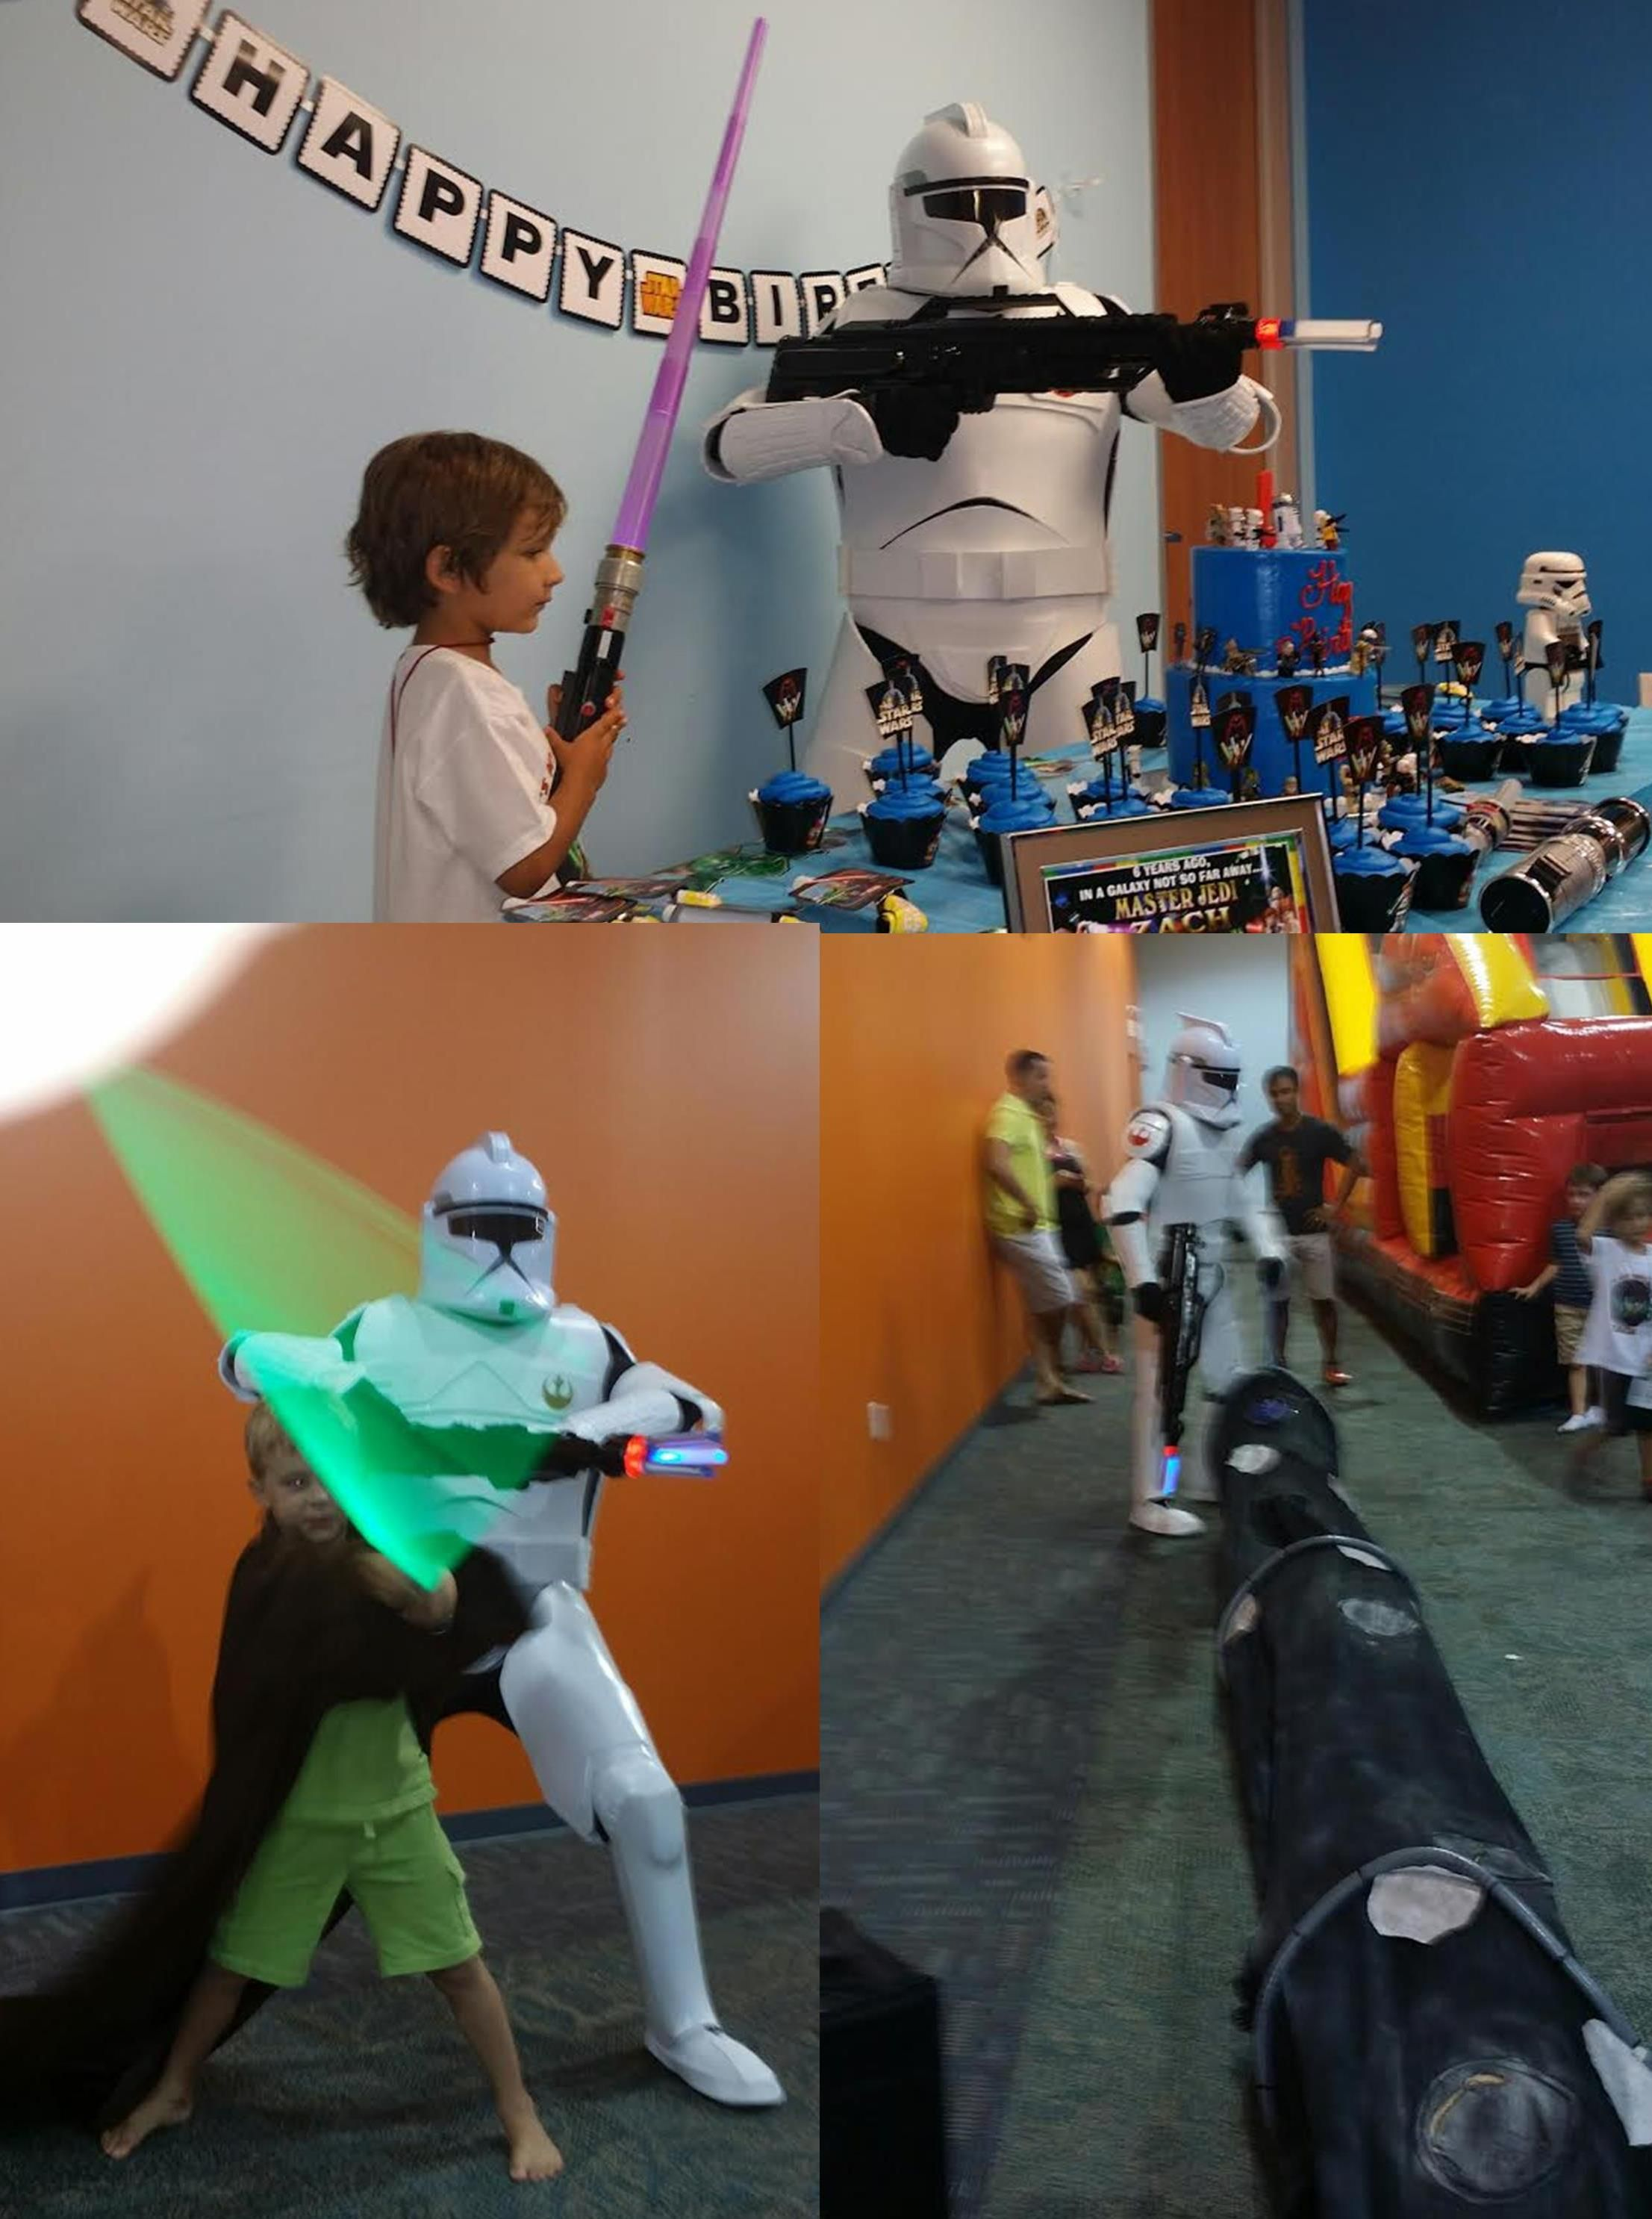 Clone trooper costumed character  & Jedi in Houston